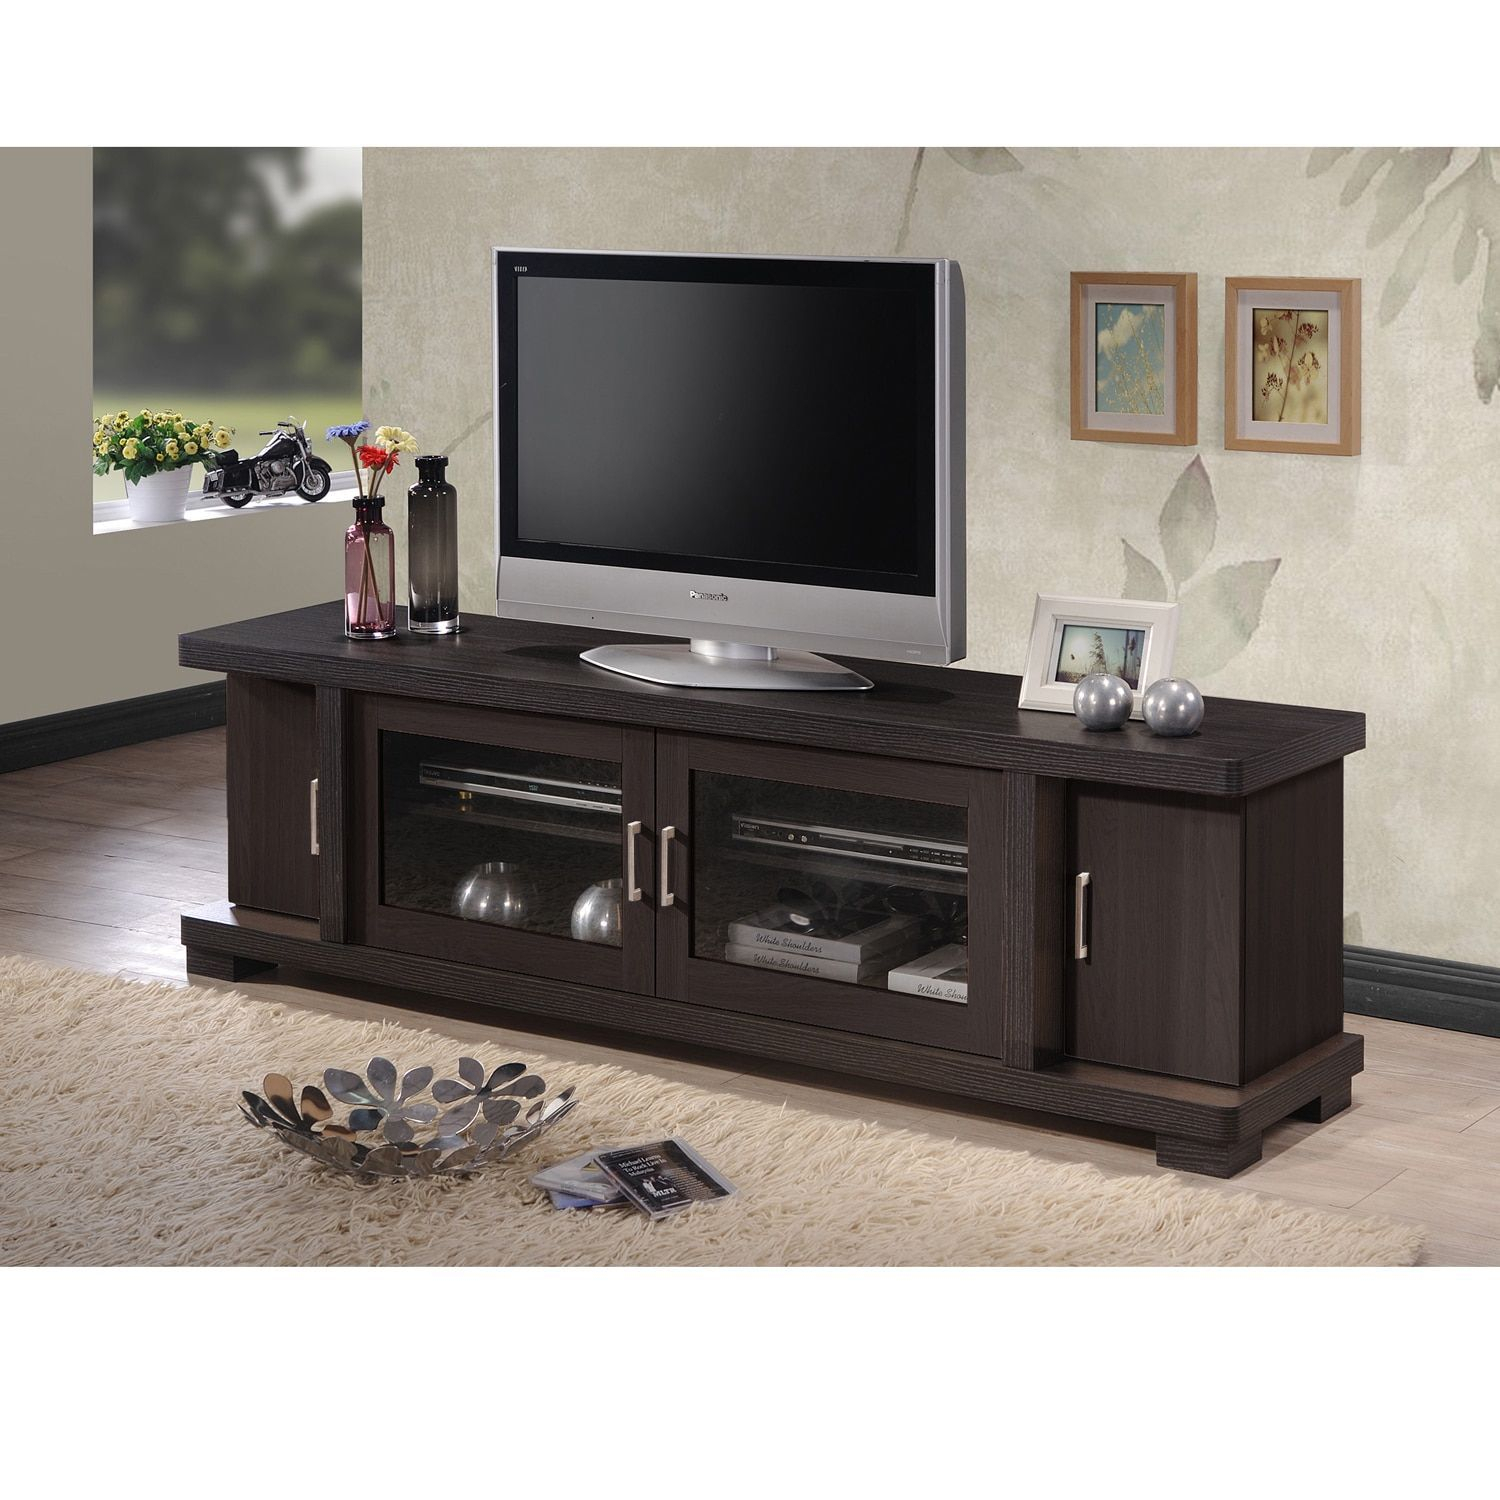 Baxton Studio Vega Contemporary 70 Inch Dark Brown Wood Tv Cabinet For Annabelle Cream 70 Inch Tv Stands (View 17 of 30)